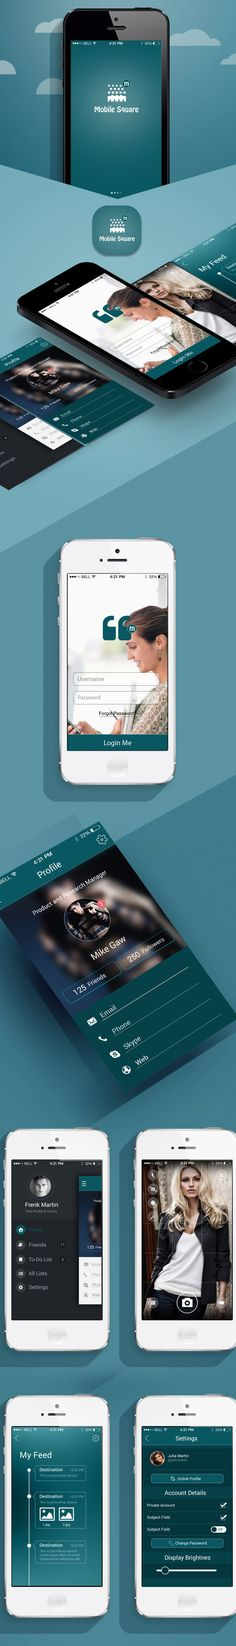 Mobile Square App UI psd Freebies